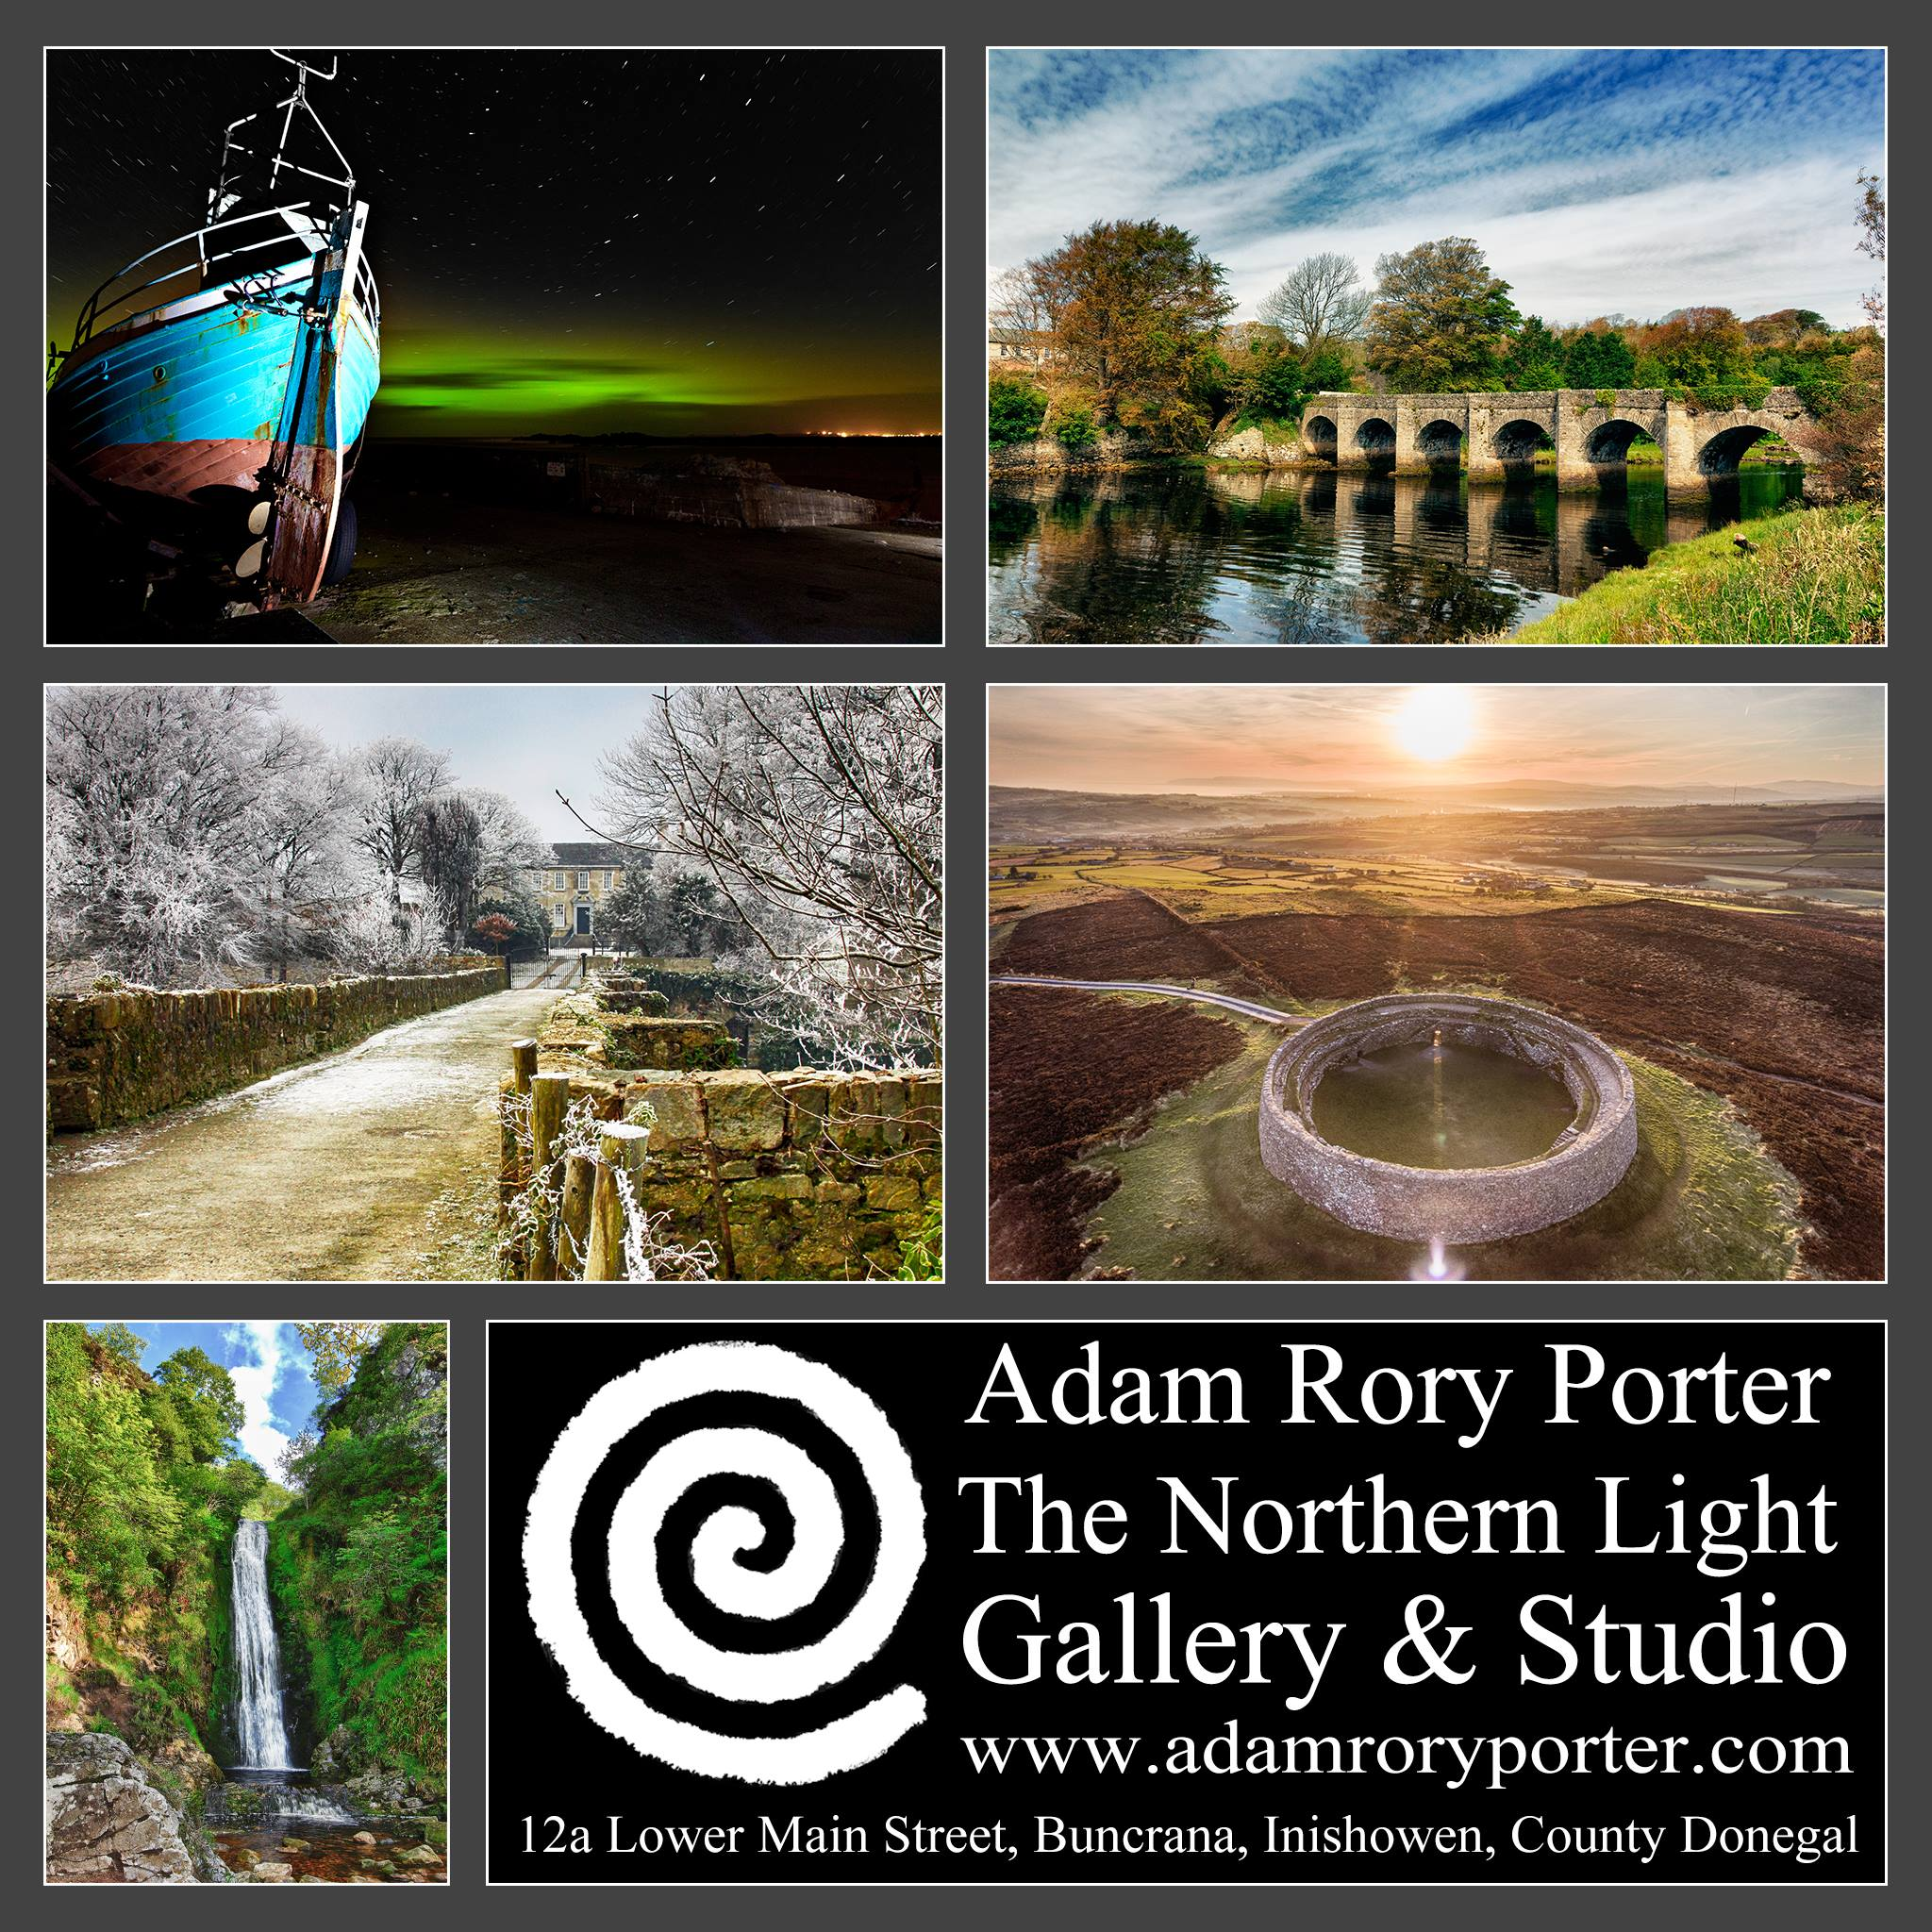 The Northern Light Gallery